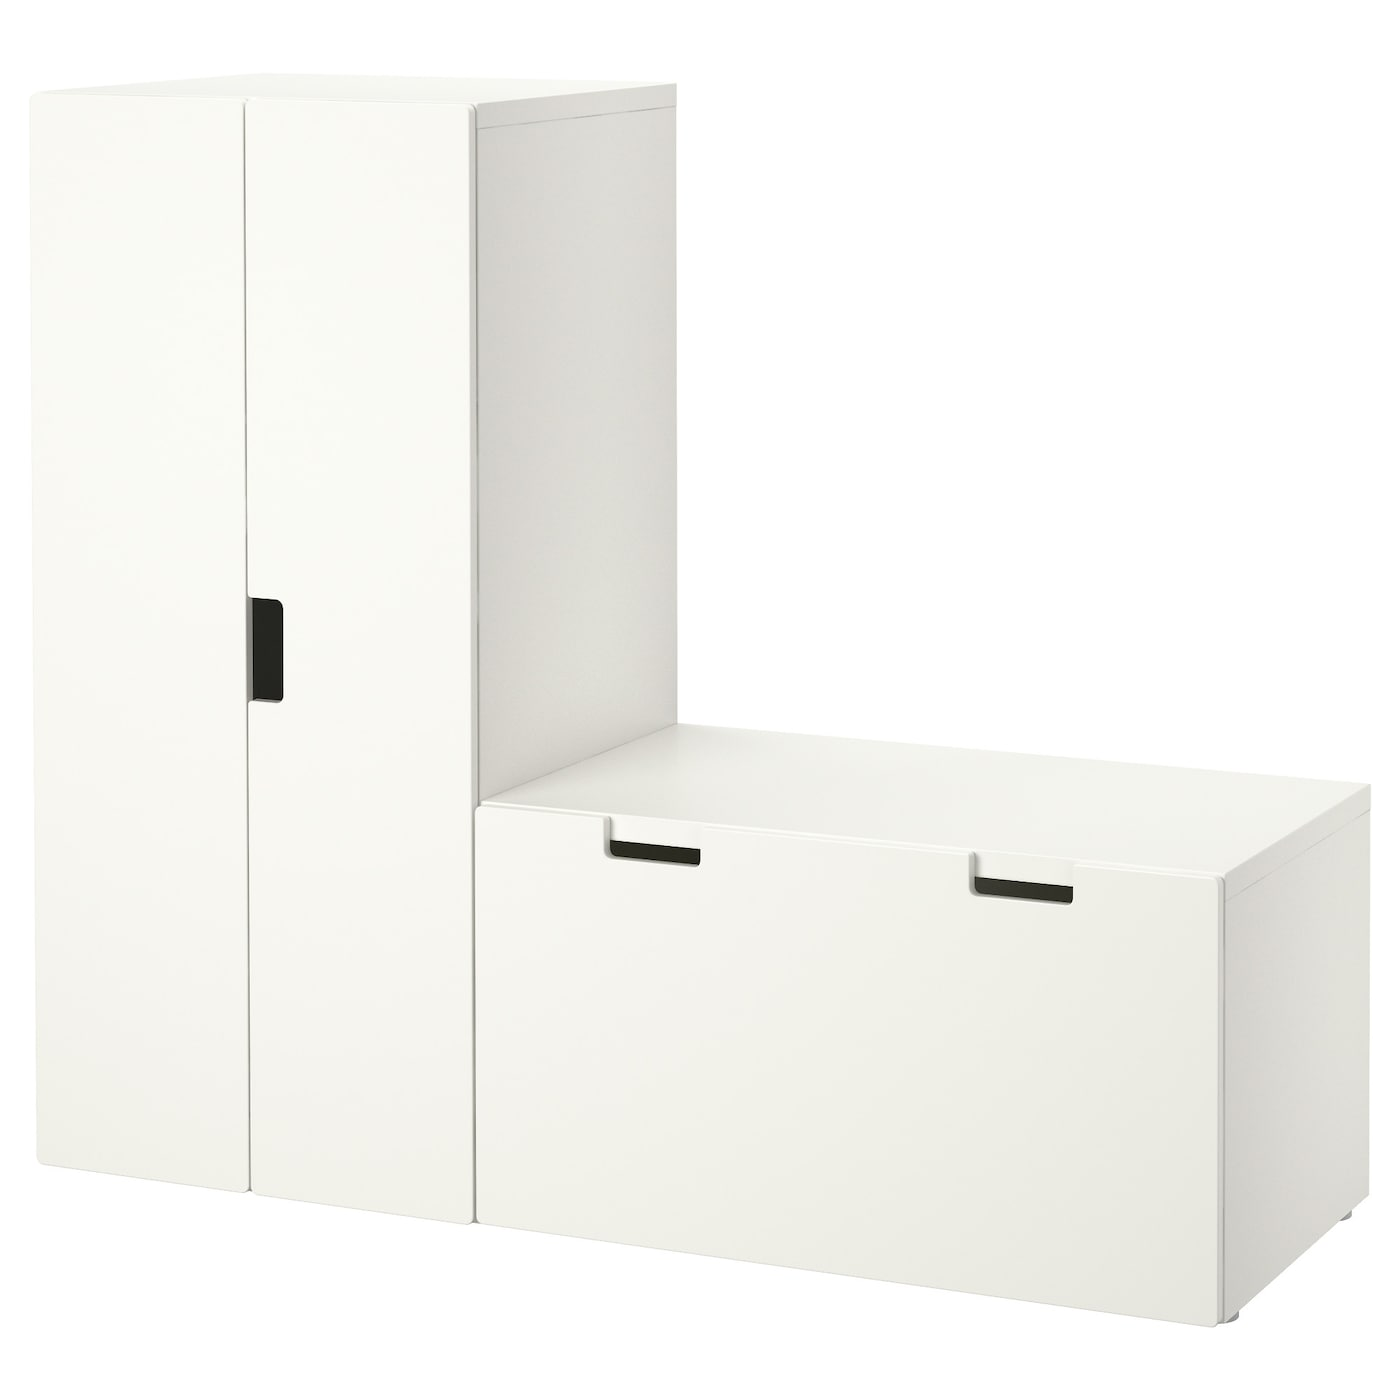 Stuva Storage Combination With Bench White White 150x50x128 Cm Ikea